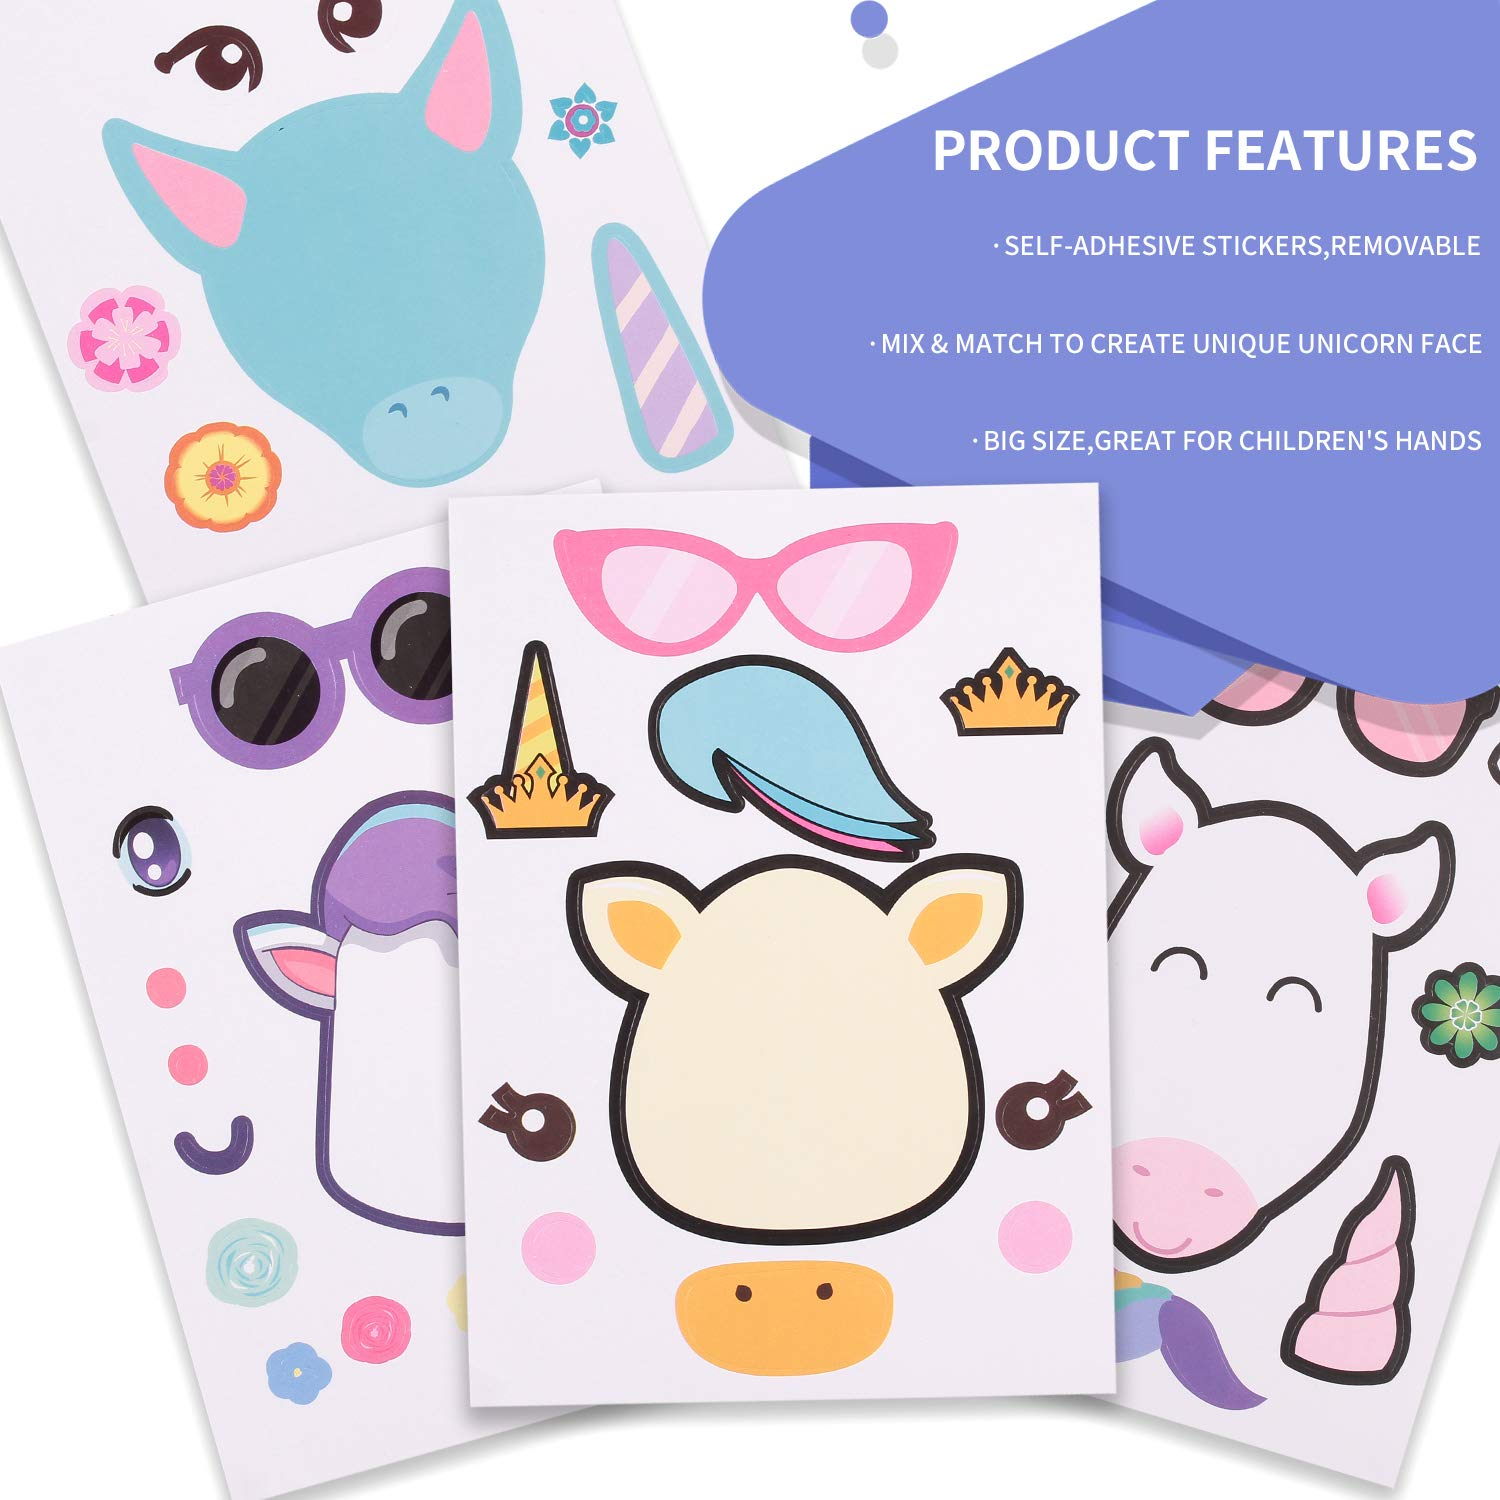 Fun Craft Project Unicorn Party Supplies for Children 3+ FZR Legend 5.9 x 8.3 inches Unicorn Theme Birthday Party Favors 24 Make A Unicorn Stickers for Kids 4 styles